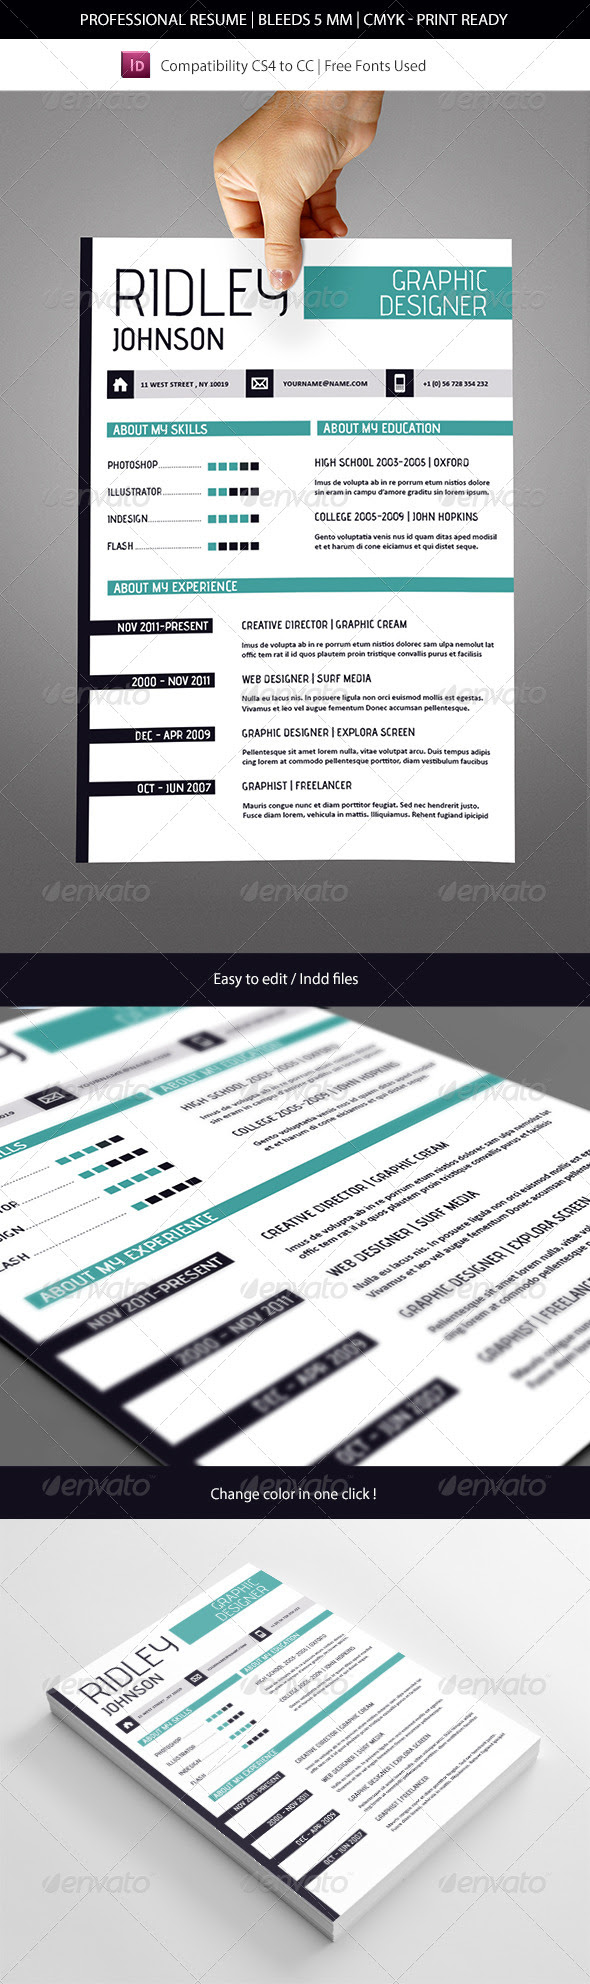 indesign resume template 2014